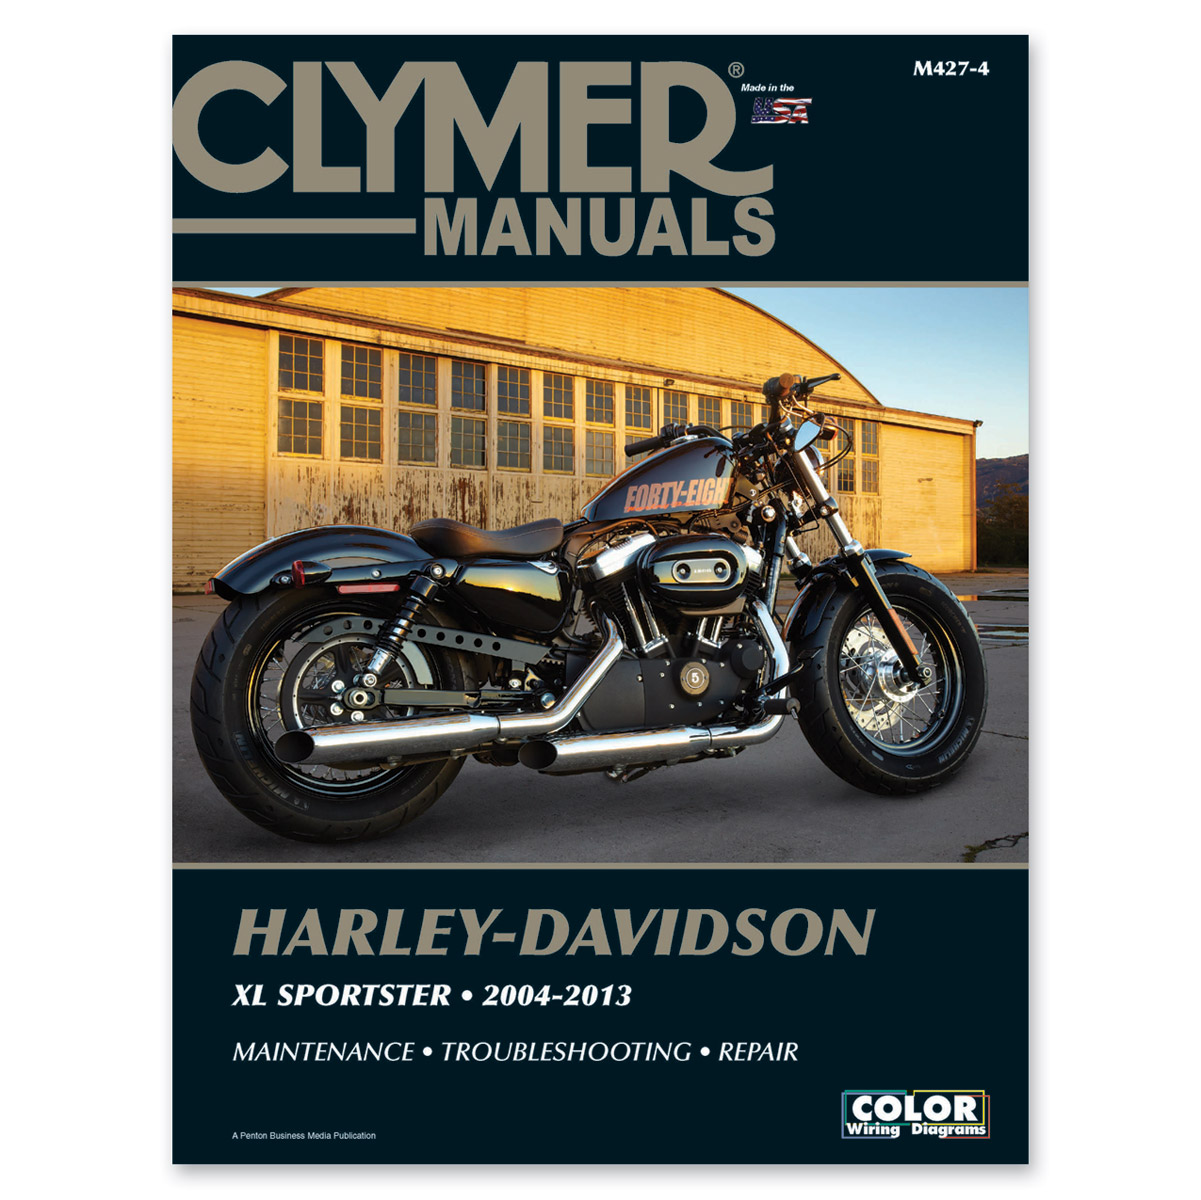 clymer sportster repair manual 446 613 j p cycles rh jpcycles com 1988 Sportster 89 Sportster